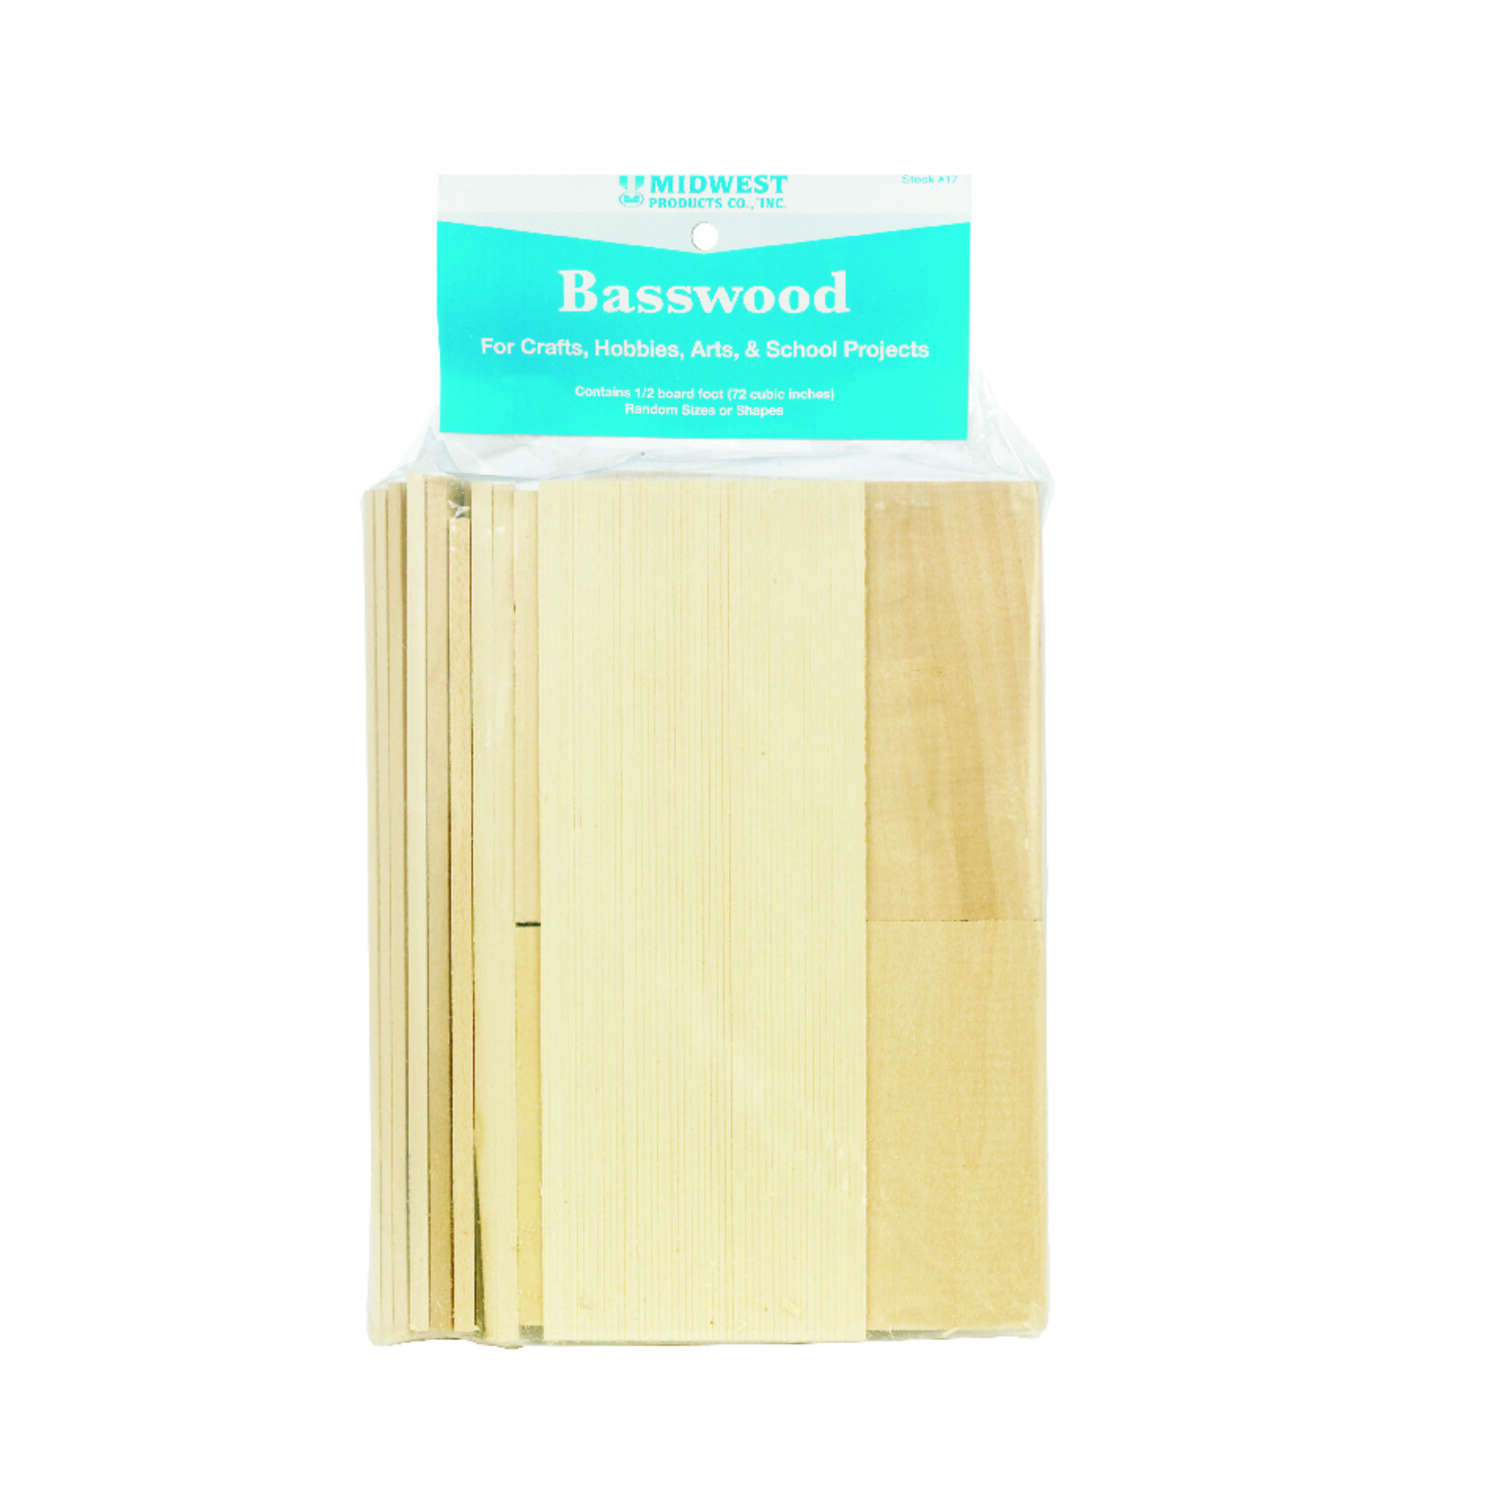 Midwest Products 6.5 in. W x .66 ft. L x 2.5 in. Basswood Lumber #2/BTR Premium Grade